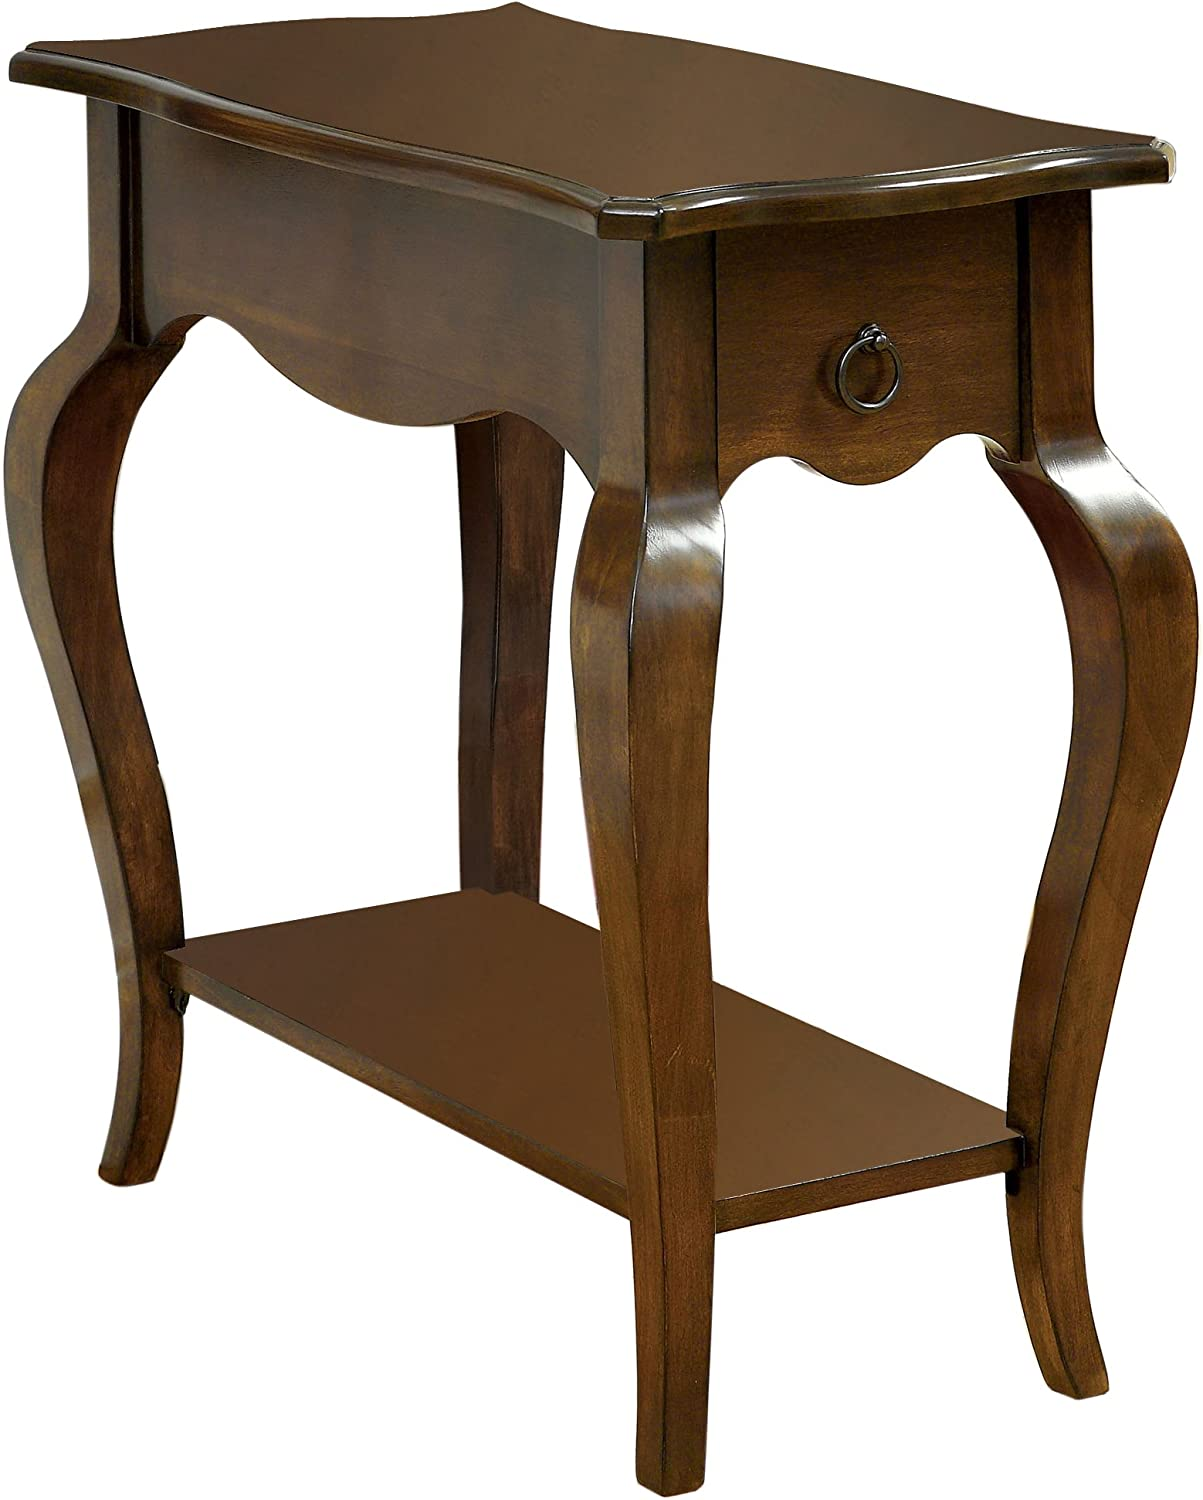 Furniture of America Rosalie Curved 1-Drawer Side Table, Tobacco Oak